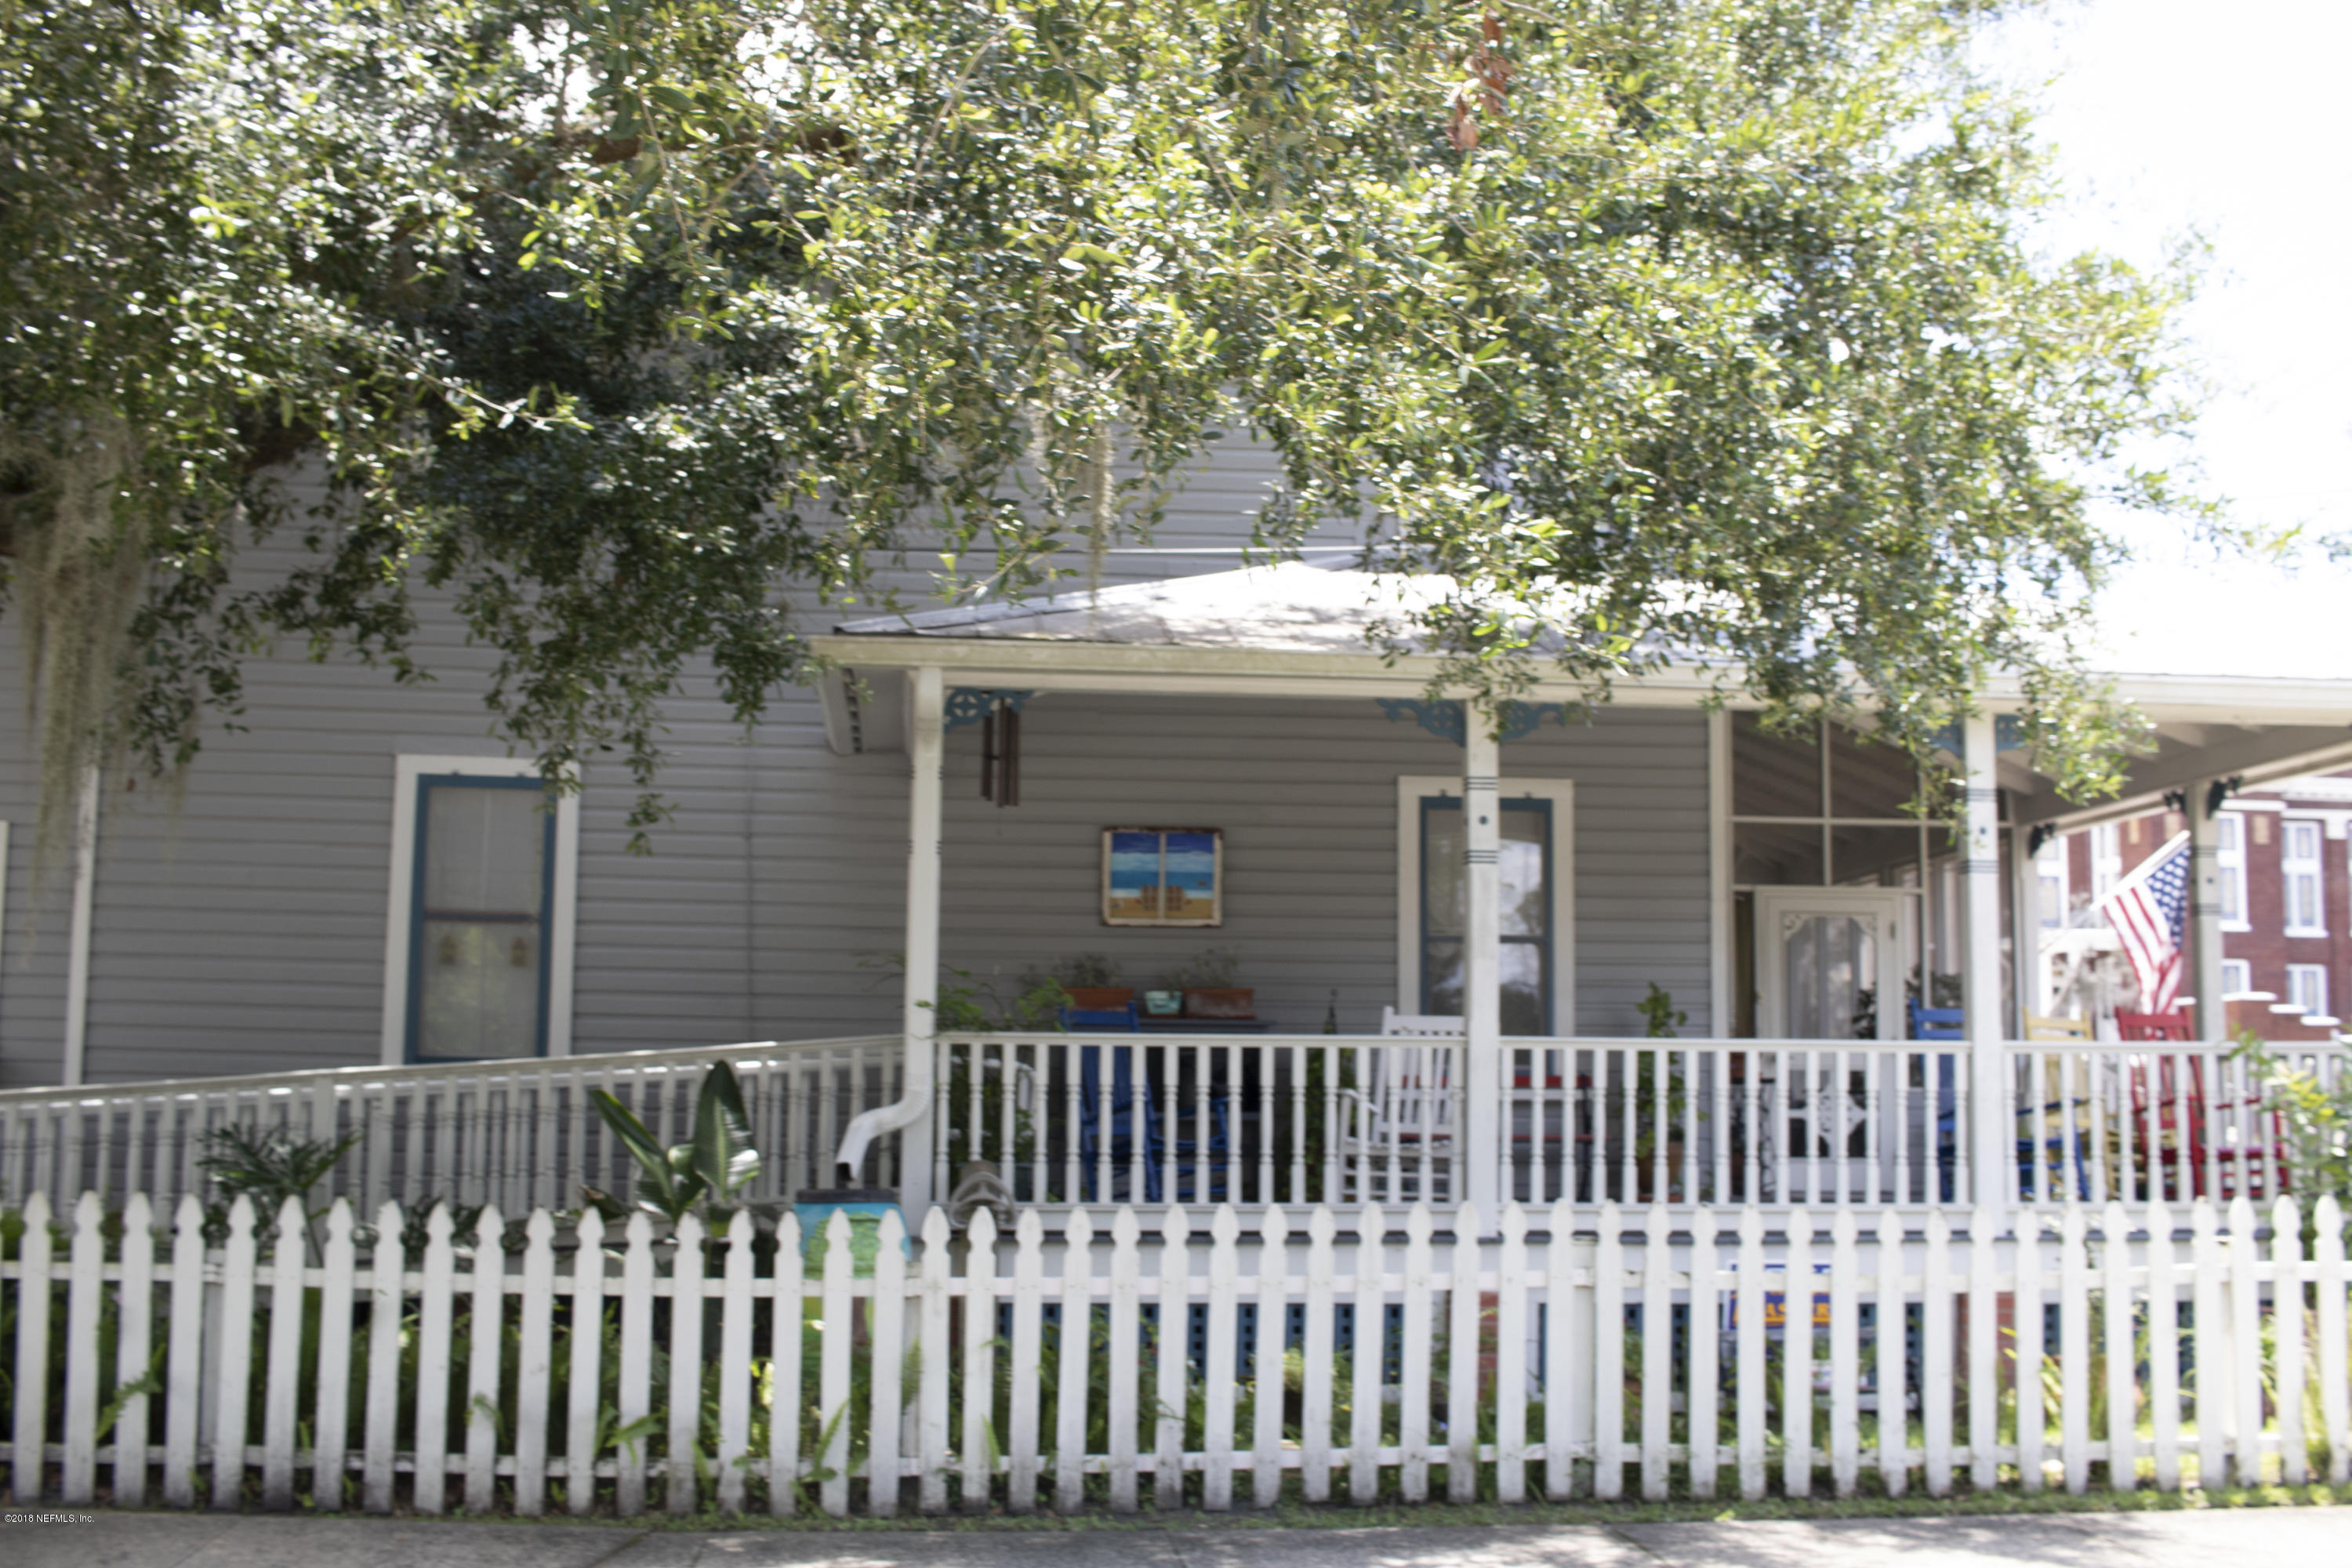 520 OAK, PALATKA, FLORIDA 32177, 3 Bedrooms Bedrooms, ,2 BathroomsBathrooms,Single family,For sale,OAK,945923